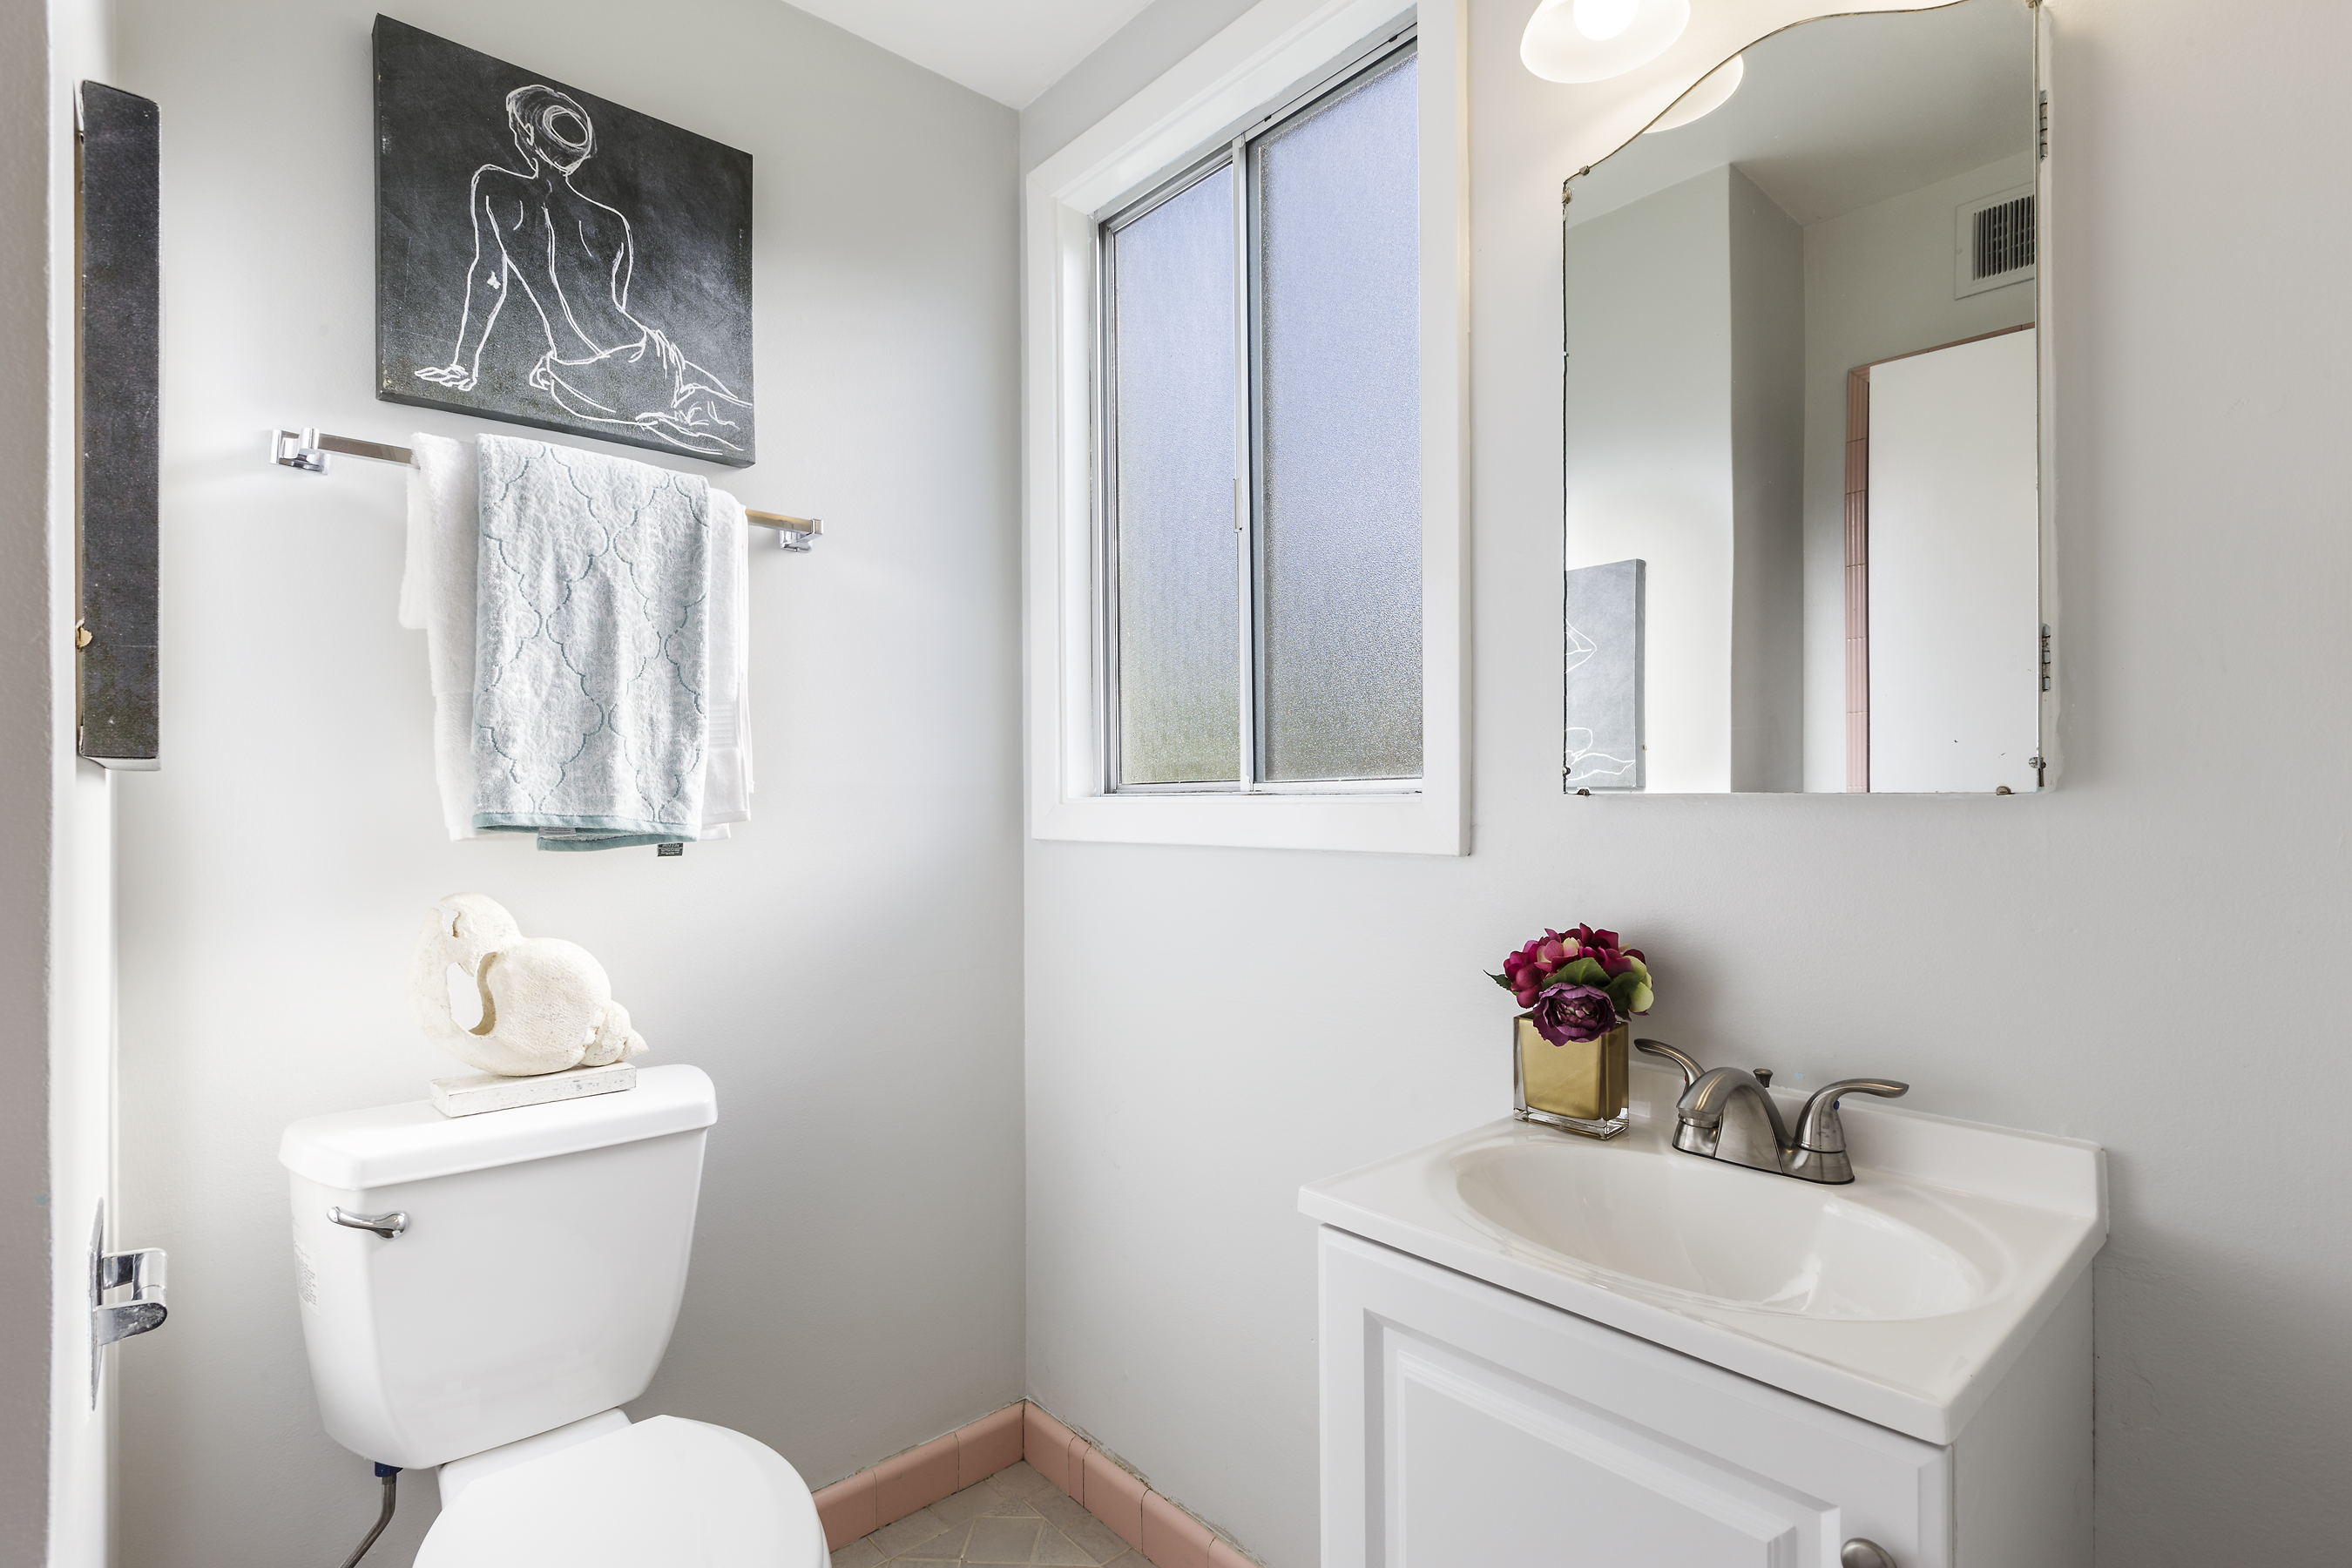 12-1260-Carson-1bath-high-res